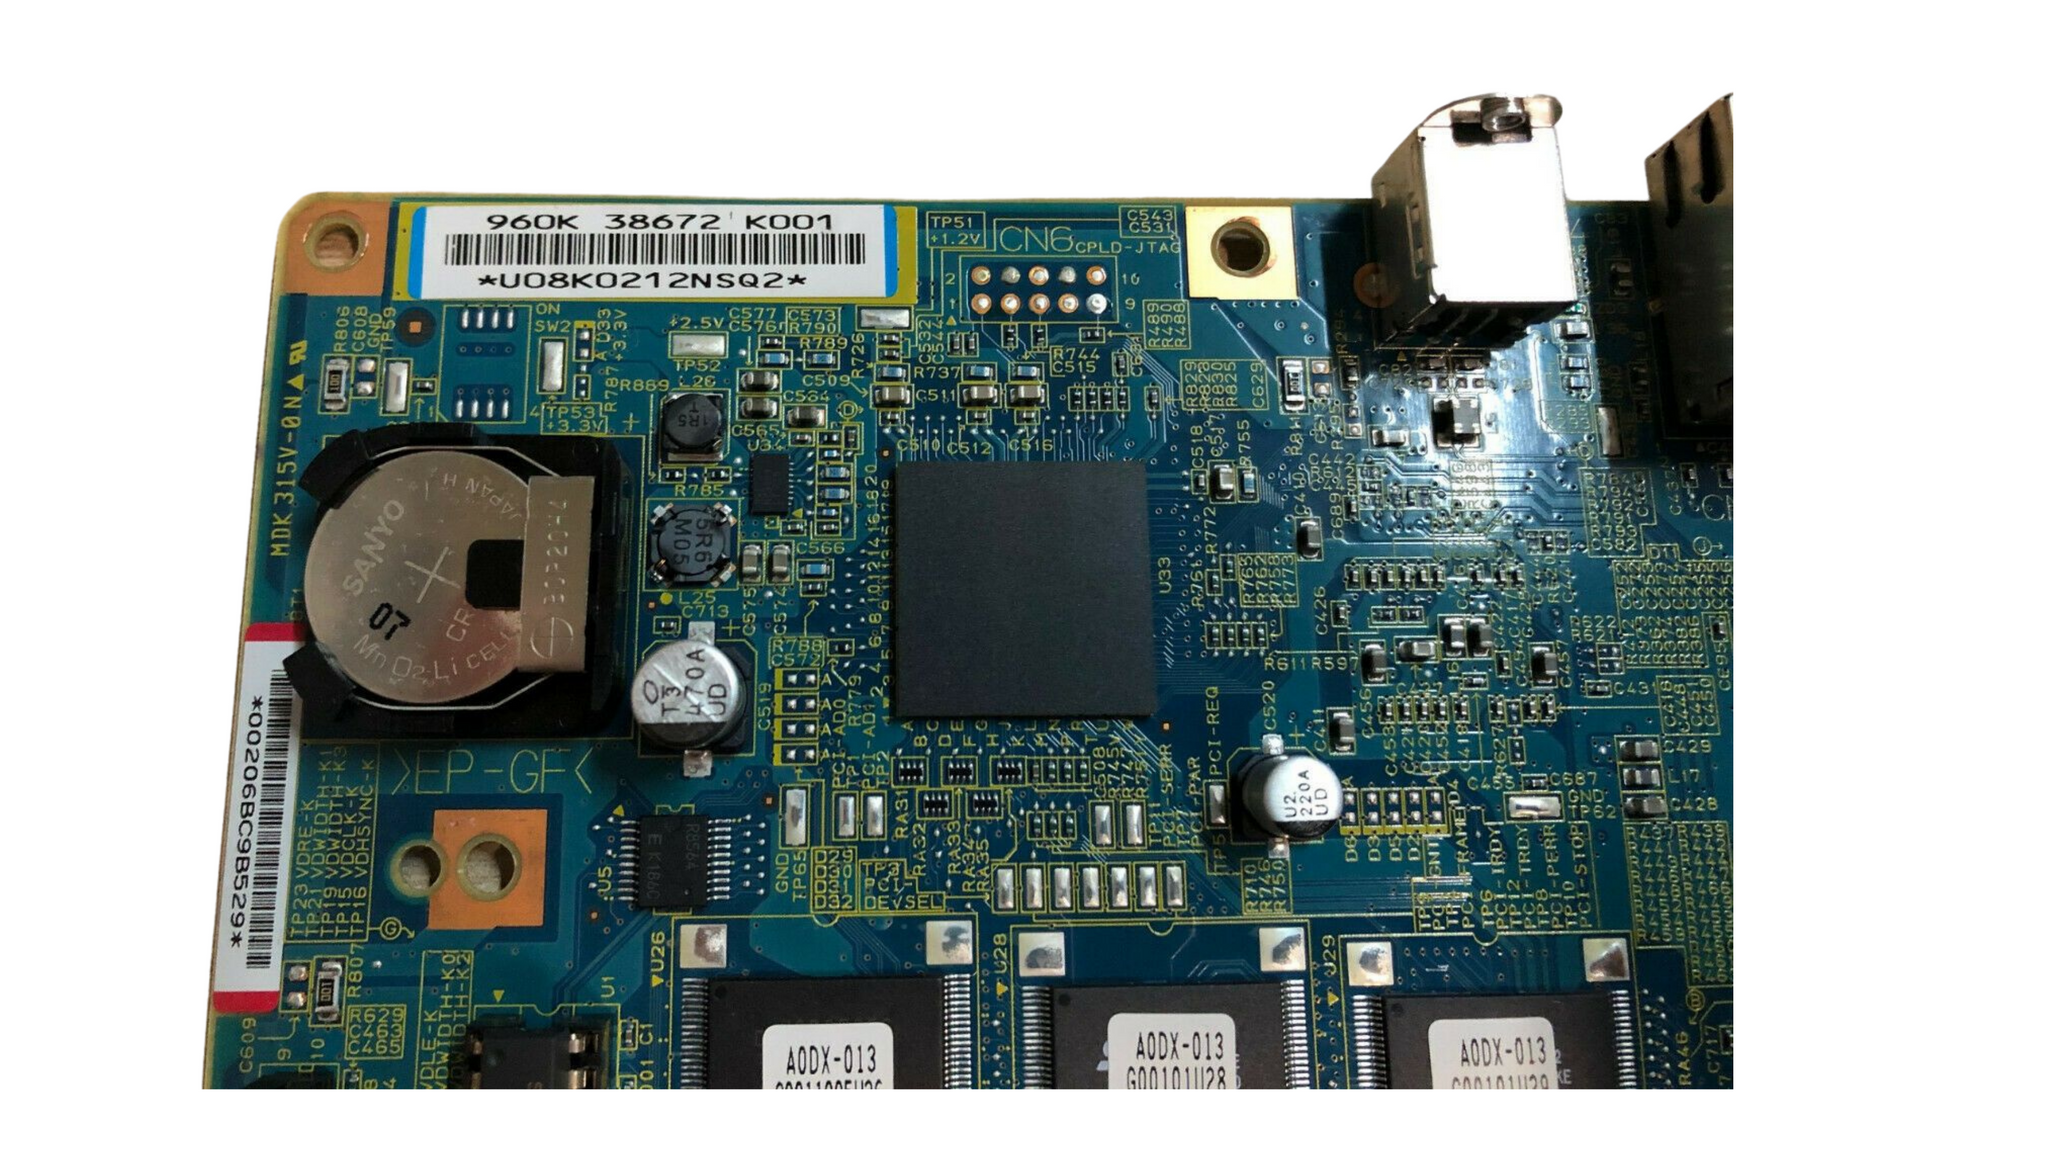 0JG336 fuser unit for Dell MFP 3115cn printer